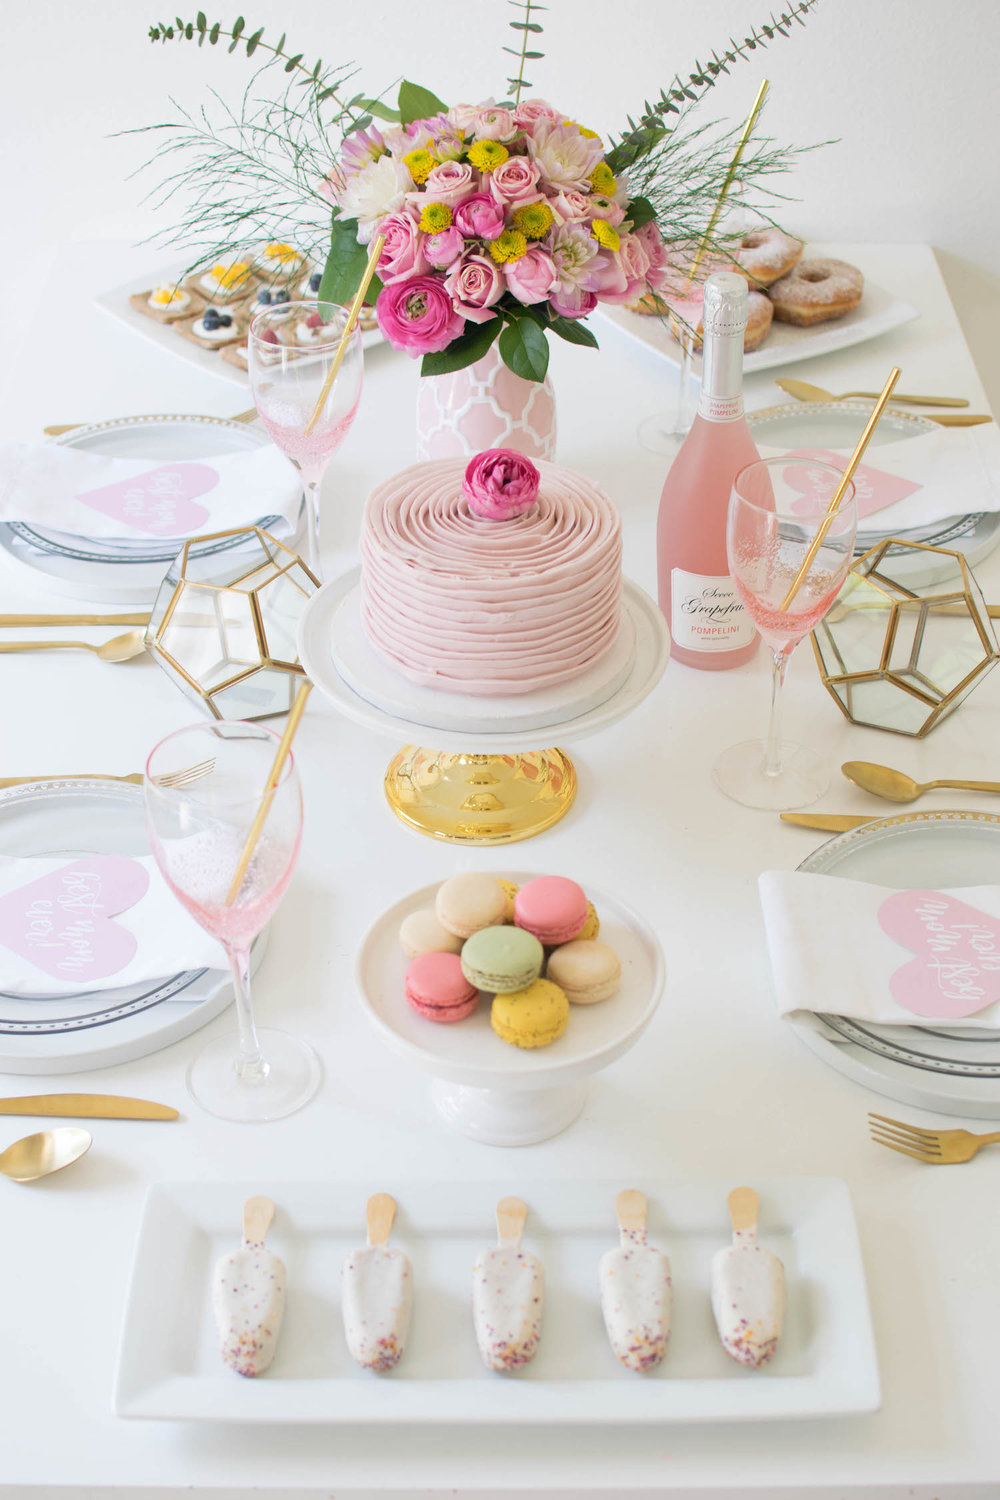 creative-diy-wedding-ideas-spring-brunch-tablescape-2.jpg